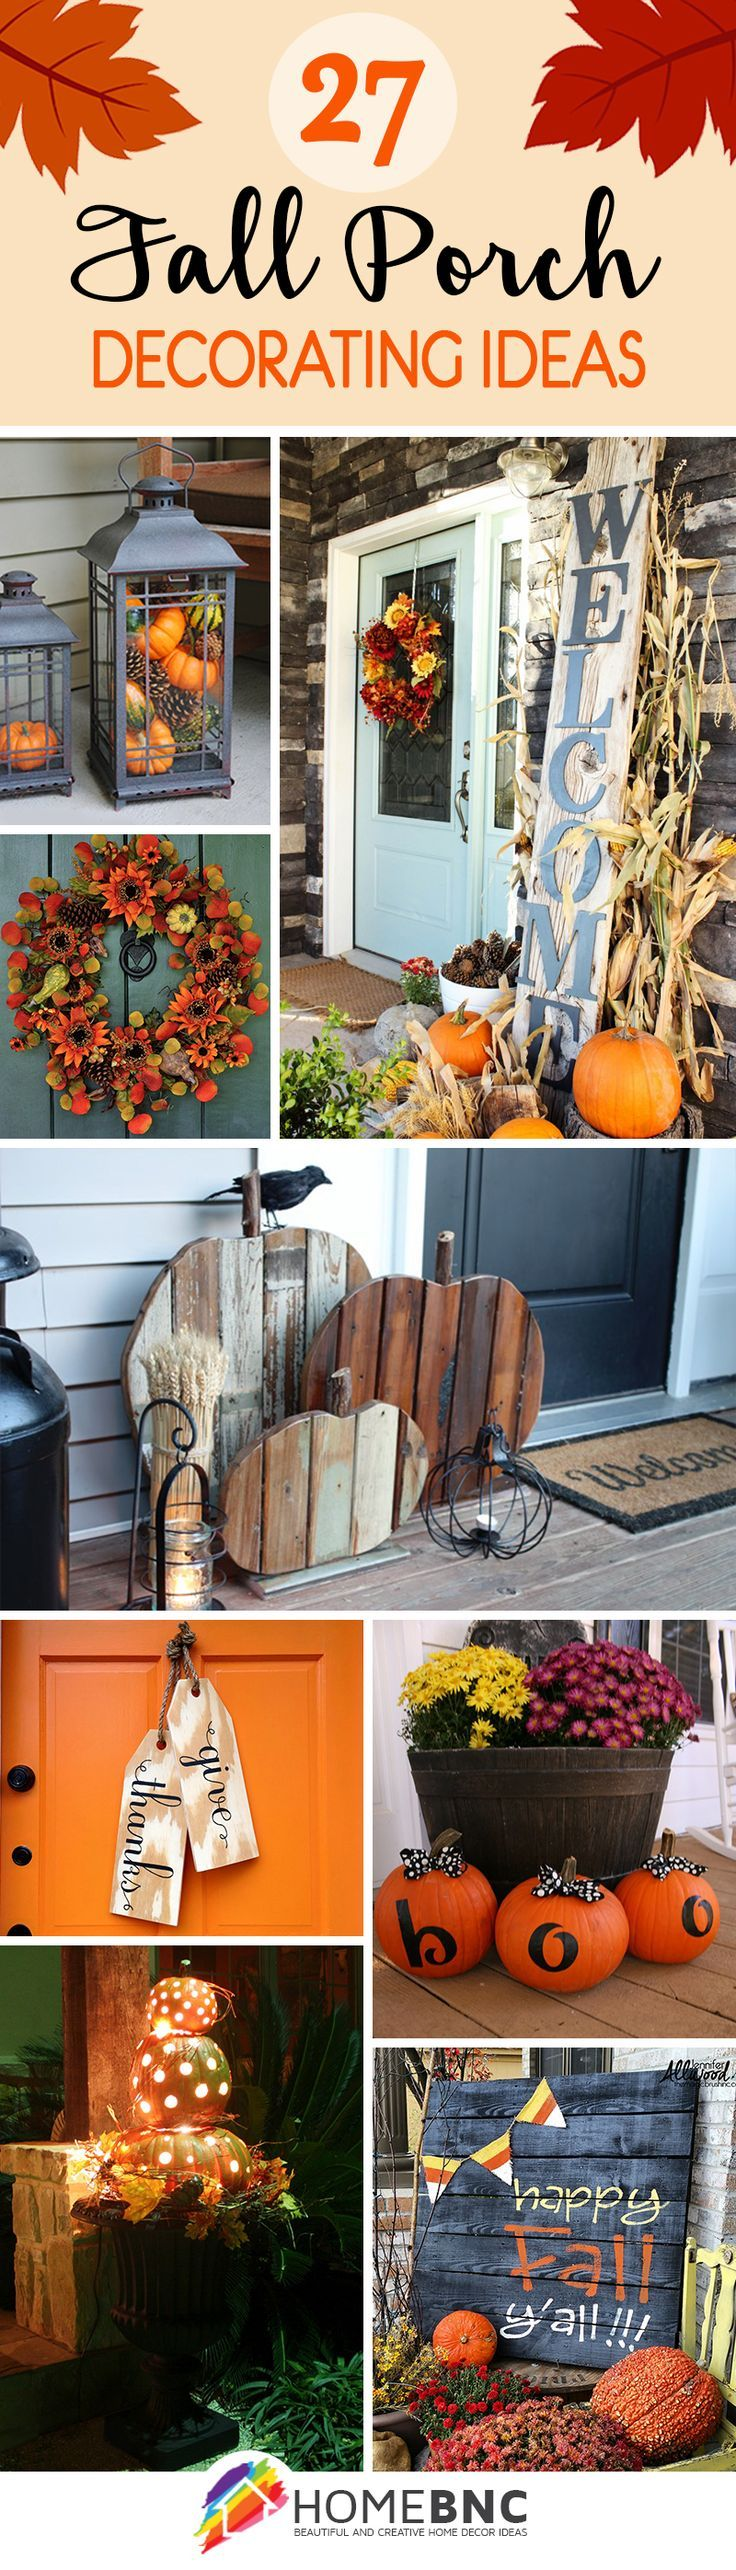 Captivating Best 25+ Fall Porch Decorations Ideas On Pinterest | Harvest Decorations,  Fall Harvest Decorations And Fall Front Porches Part 32